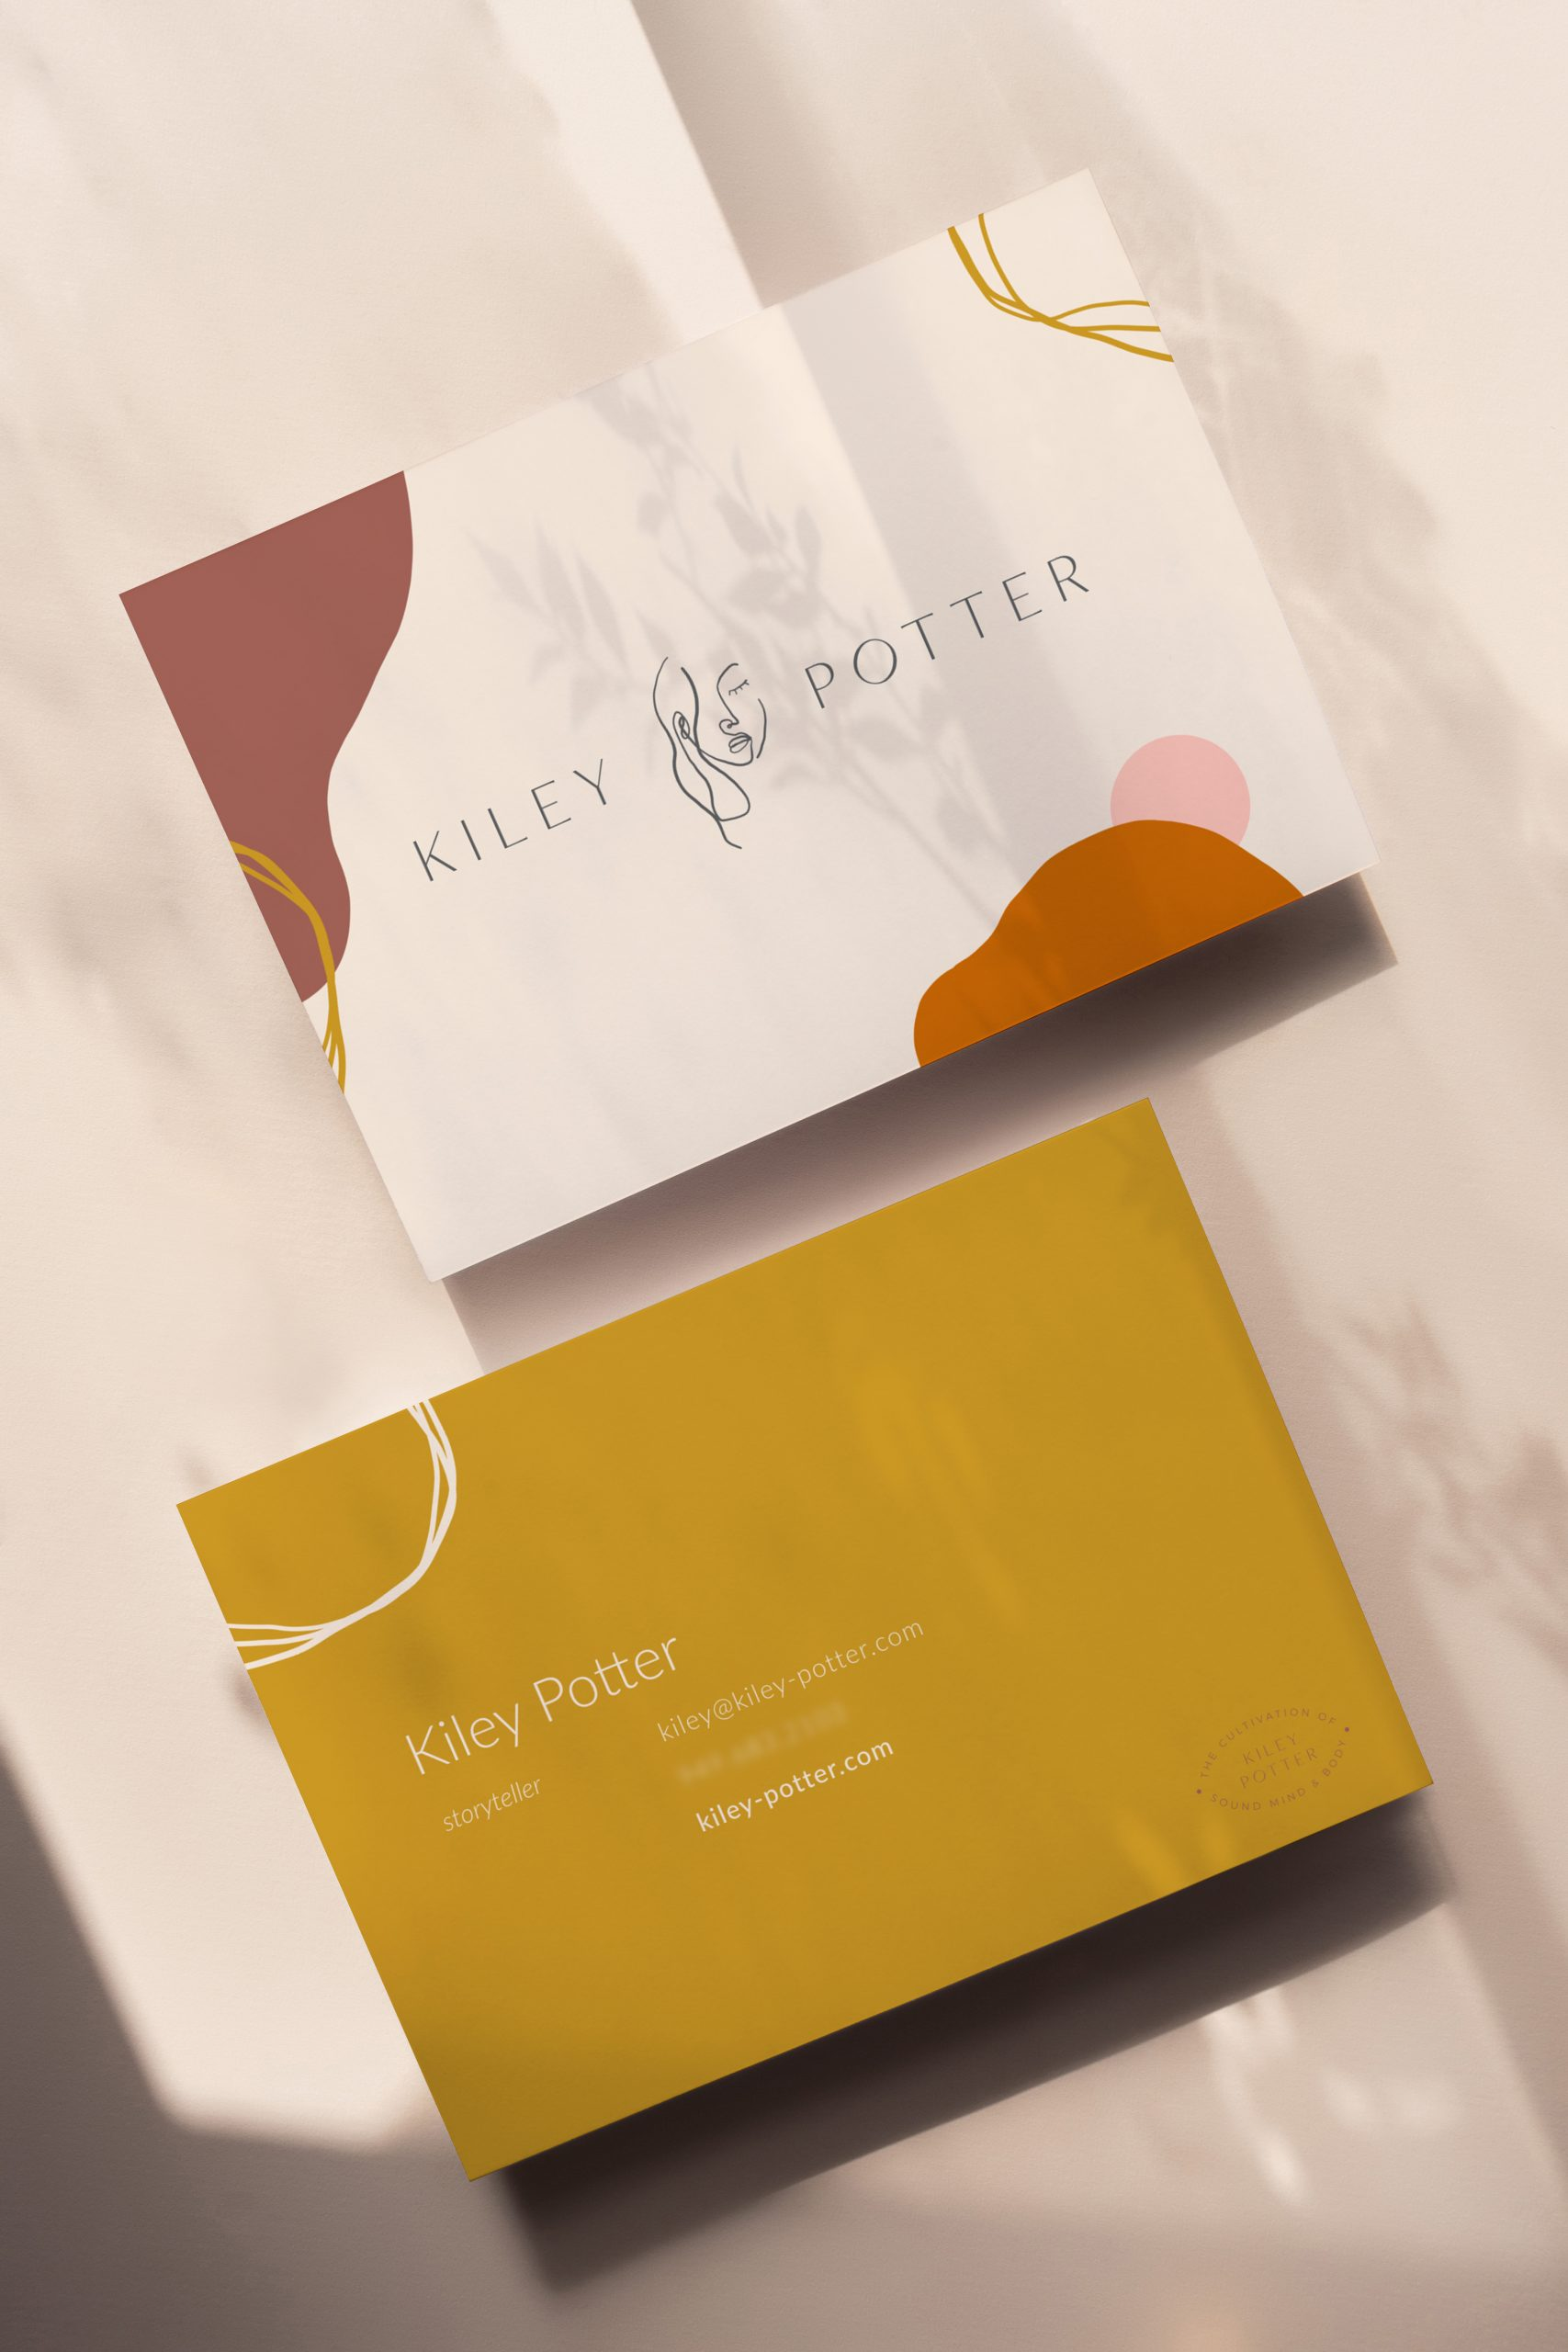 Kiley Potter business card